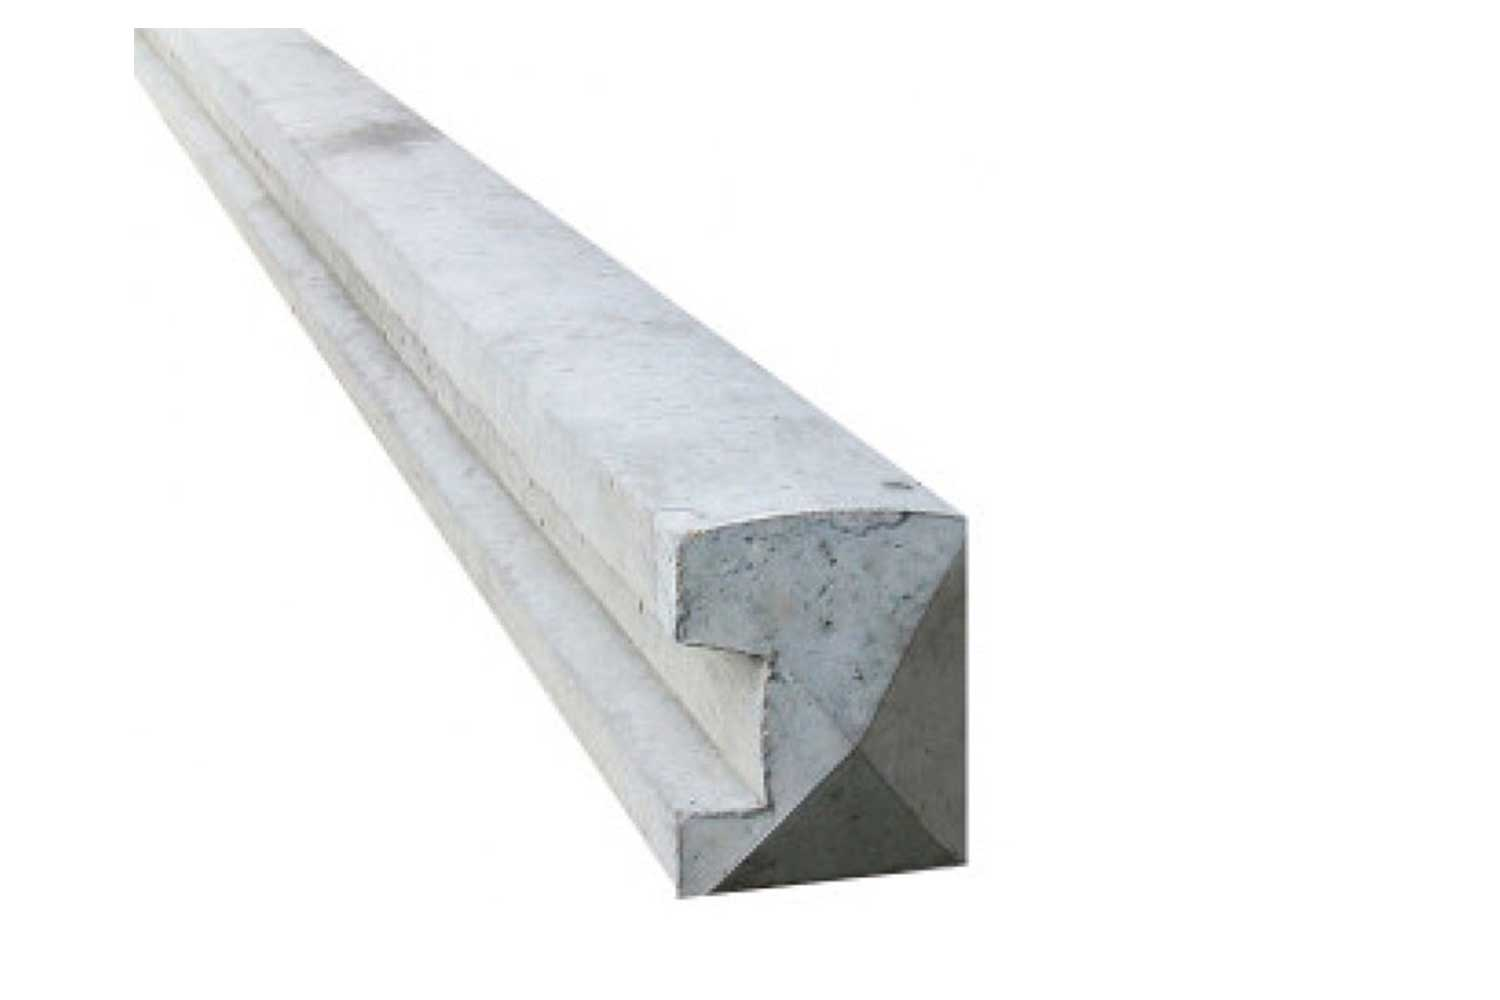 Wet Cast Slotted End Post 5 x 4 x 8ft